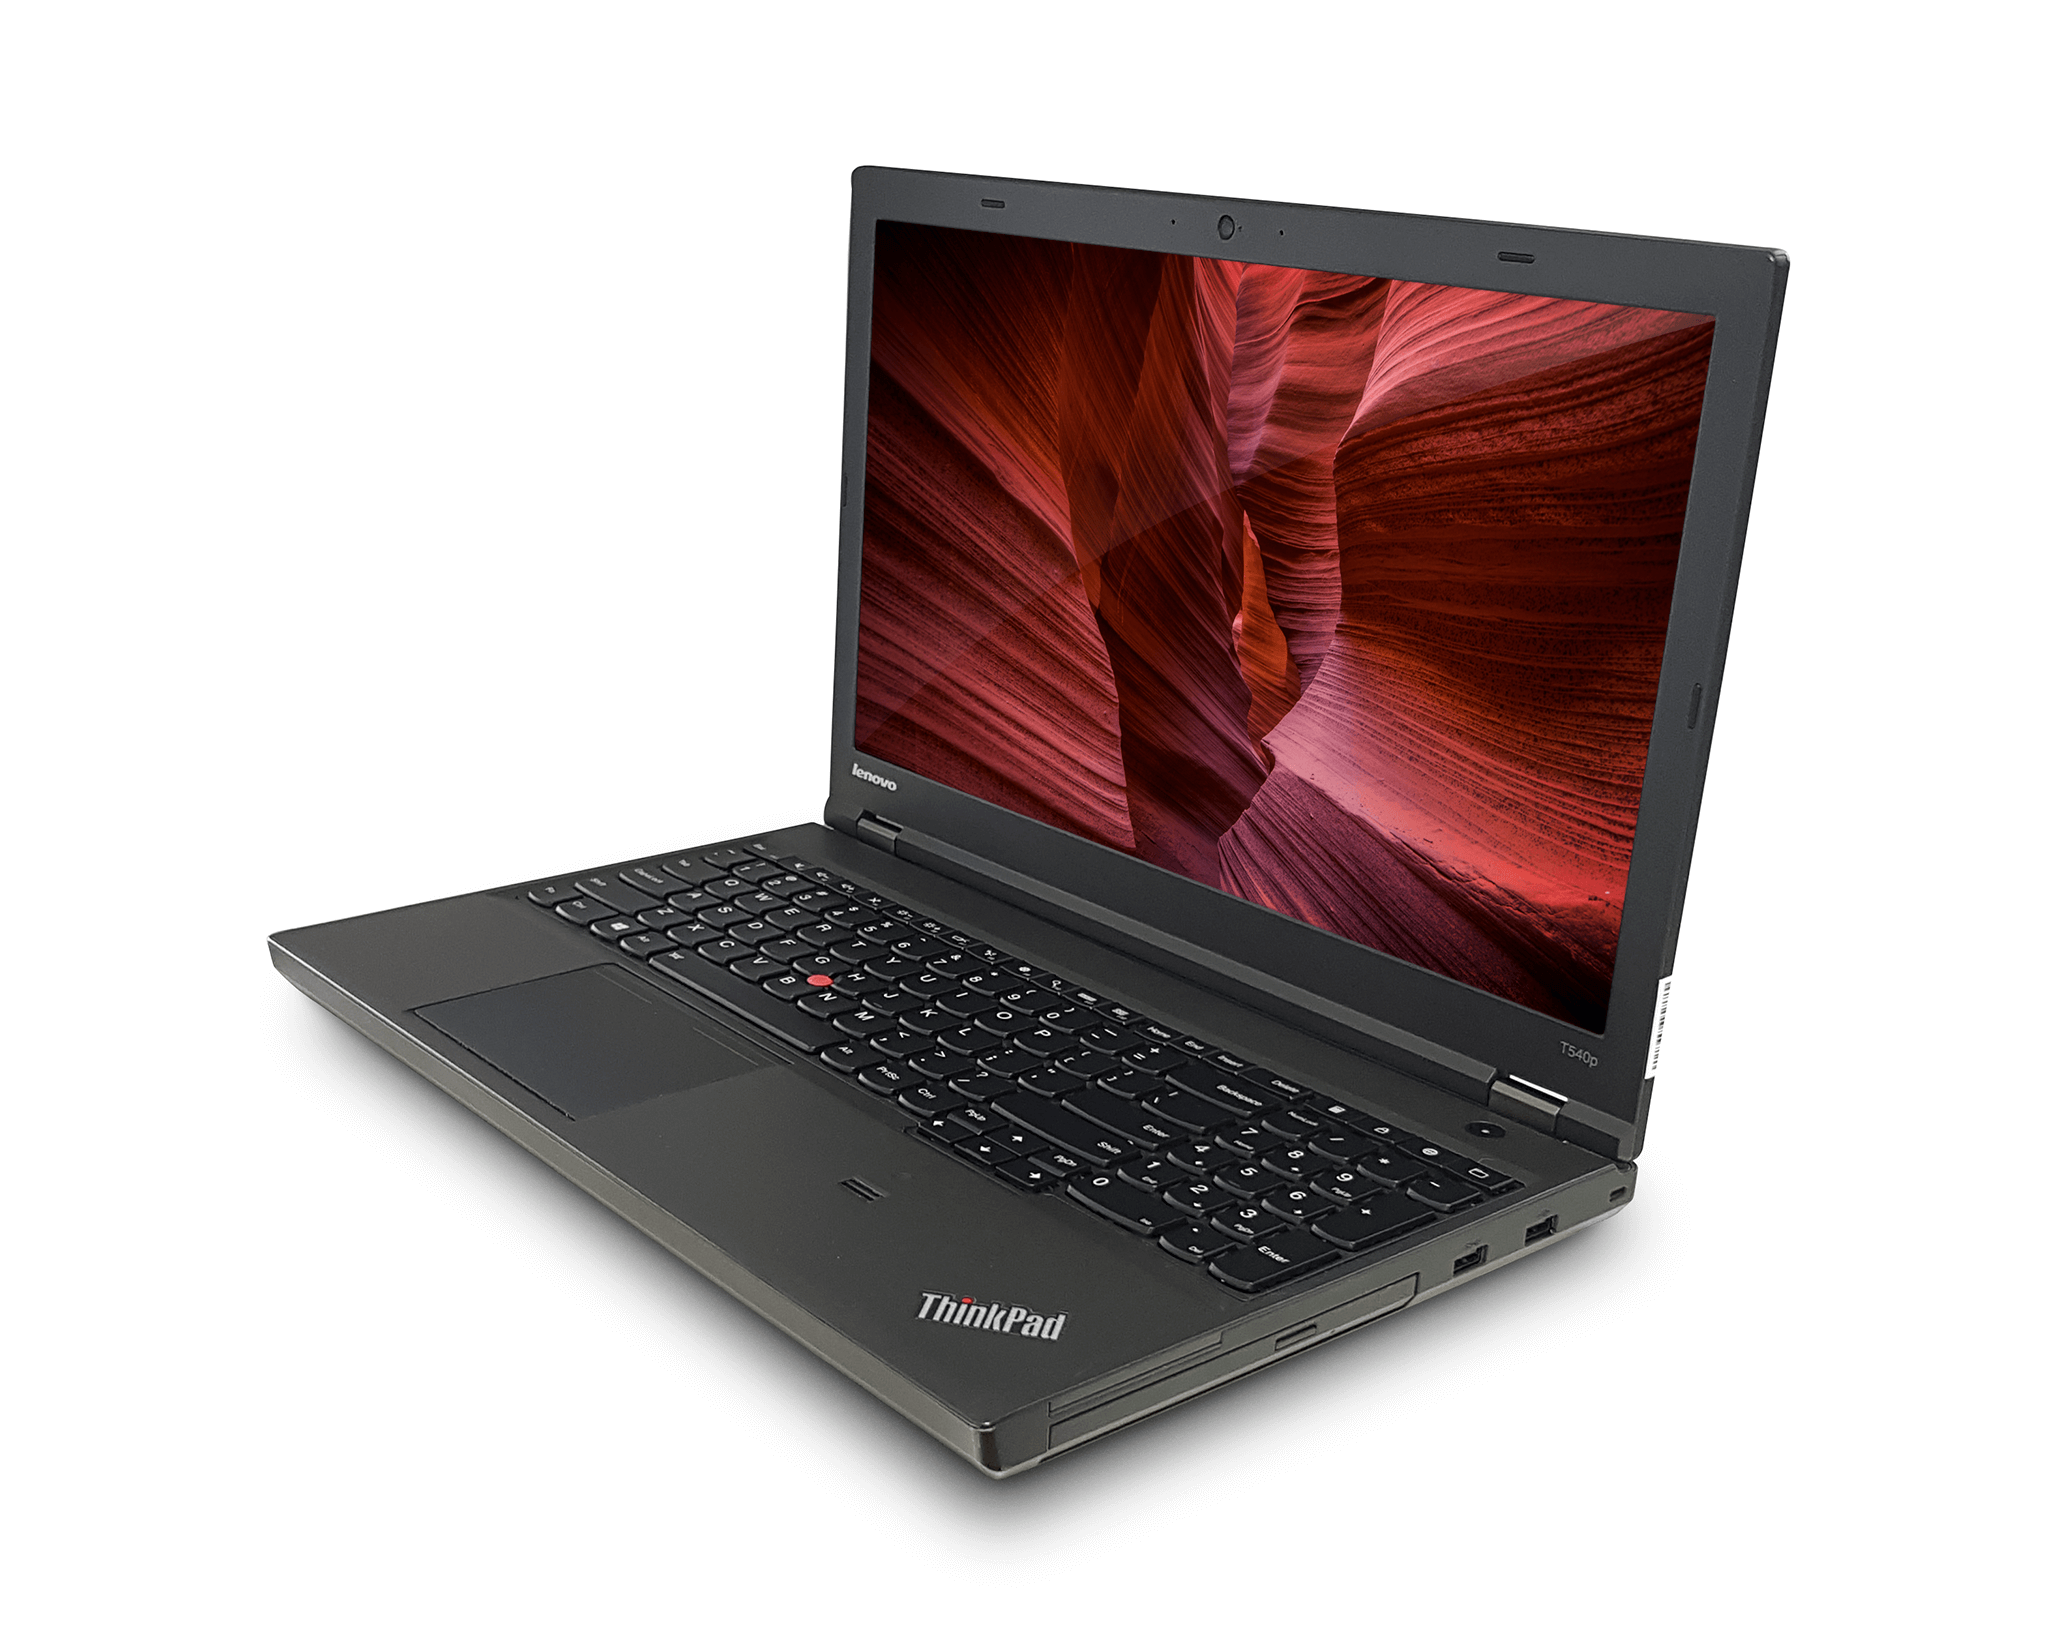 LENOVO THINKPAD T540P I5-4210M 2,6 / 8192 MB DDR3L / 500 GB / DVD-RW / WINDOWS 10 PRO REF / 15,5